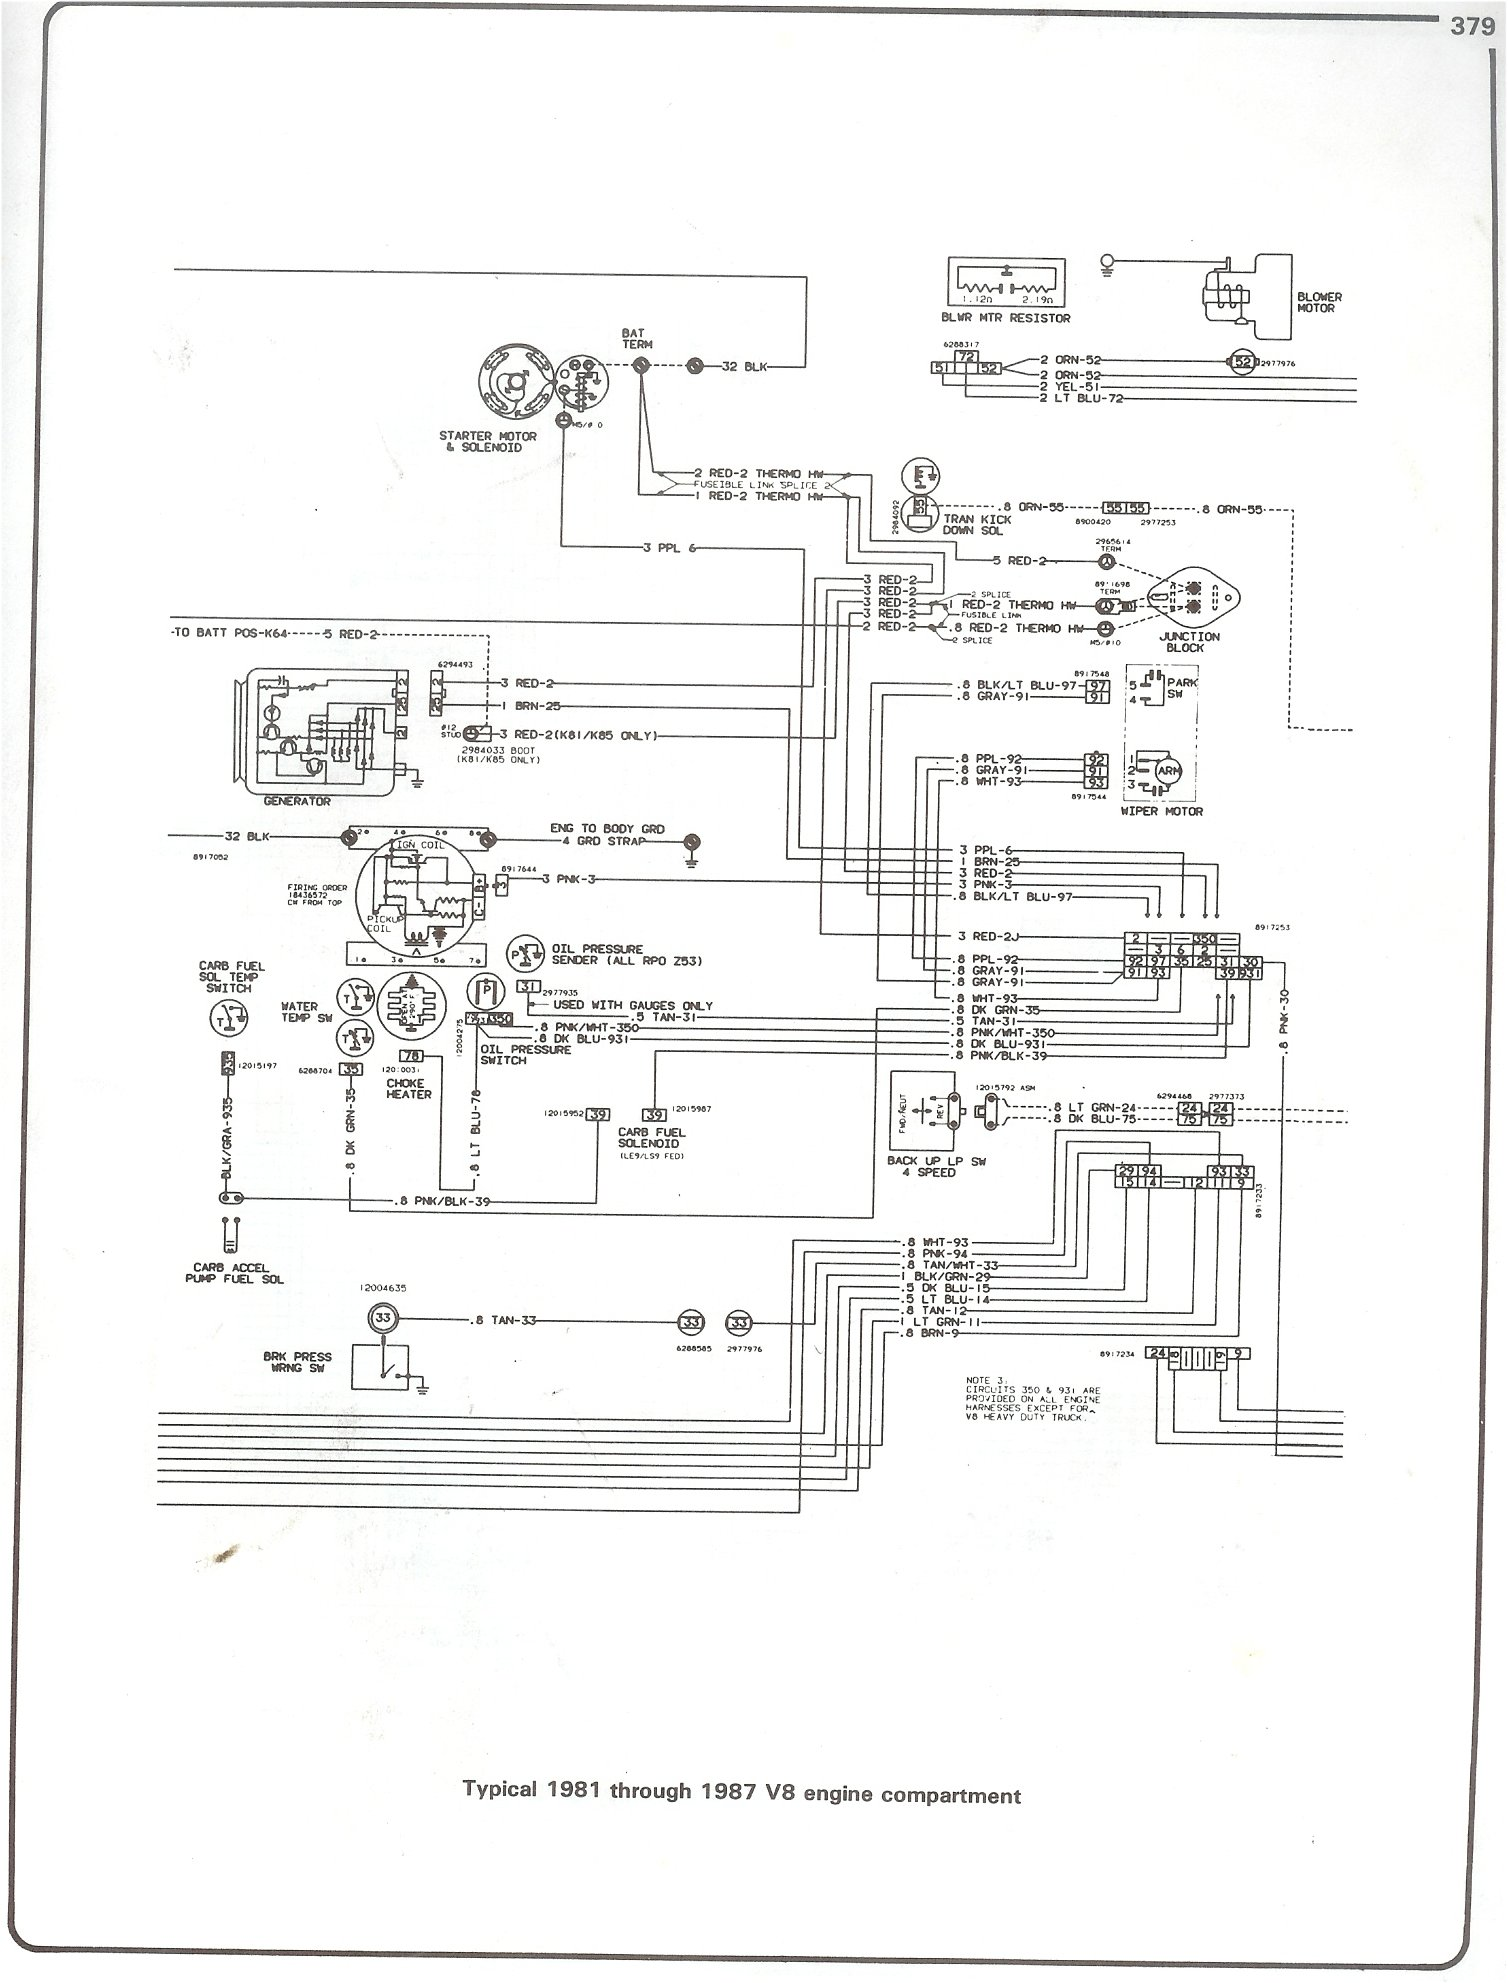 81 87_V8_engine k10 wiring harness swing harness wiring diagram ~ odicis 1986 Chevrolet Crew Cab K10 at bayanpartner.co